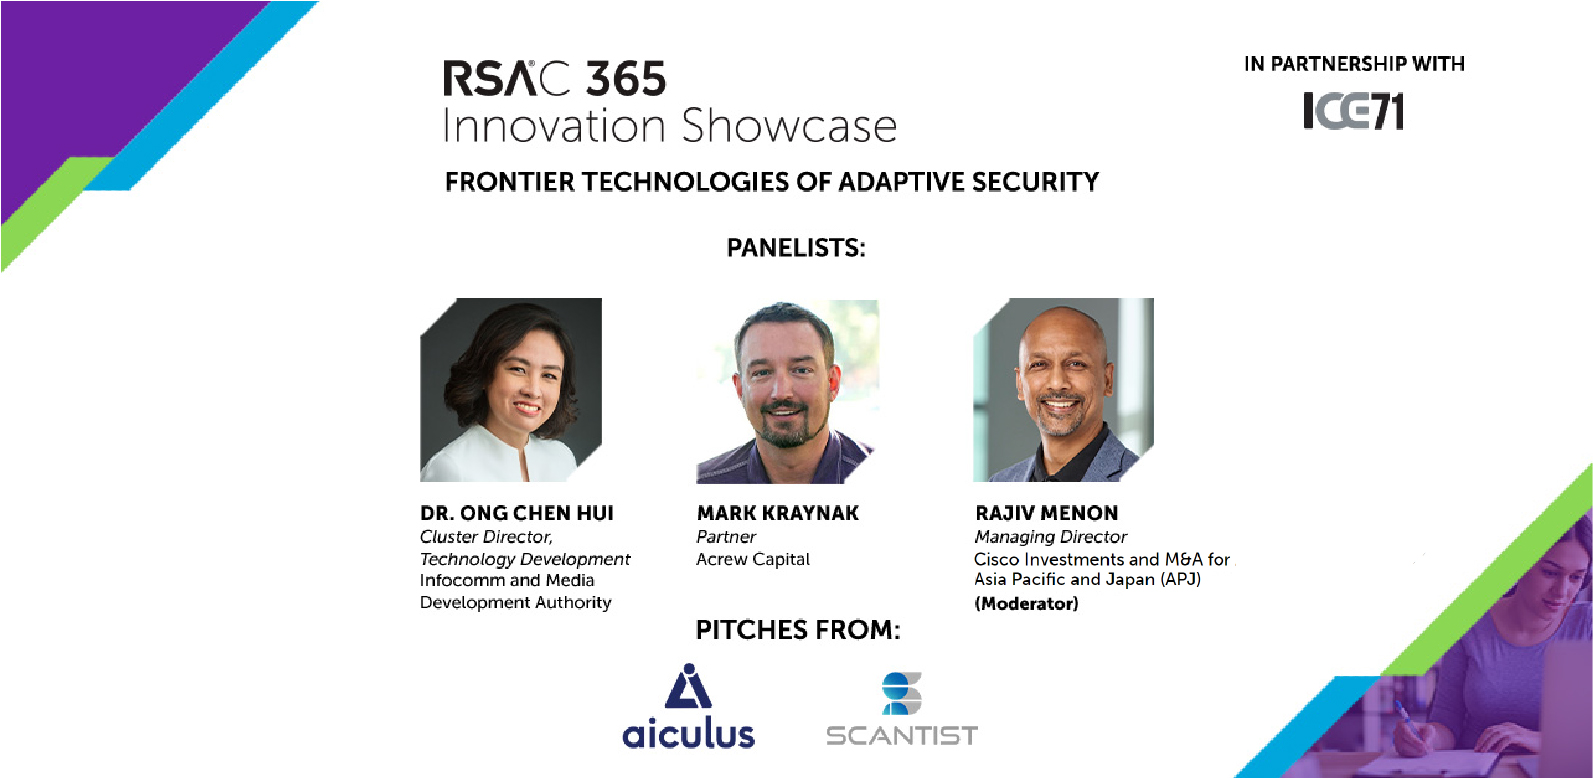 ICE71-RSAC 365 Innovation Showcase: Frontier Technologies of Adaptive Security